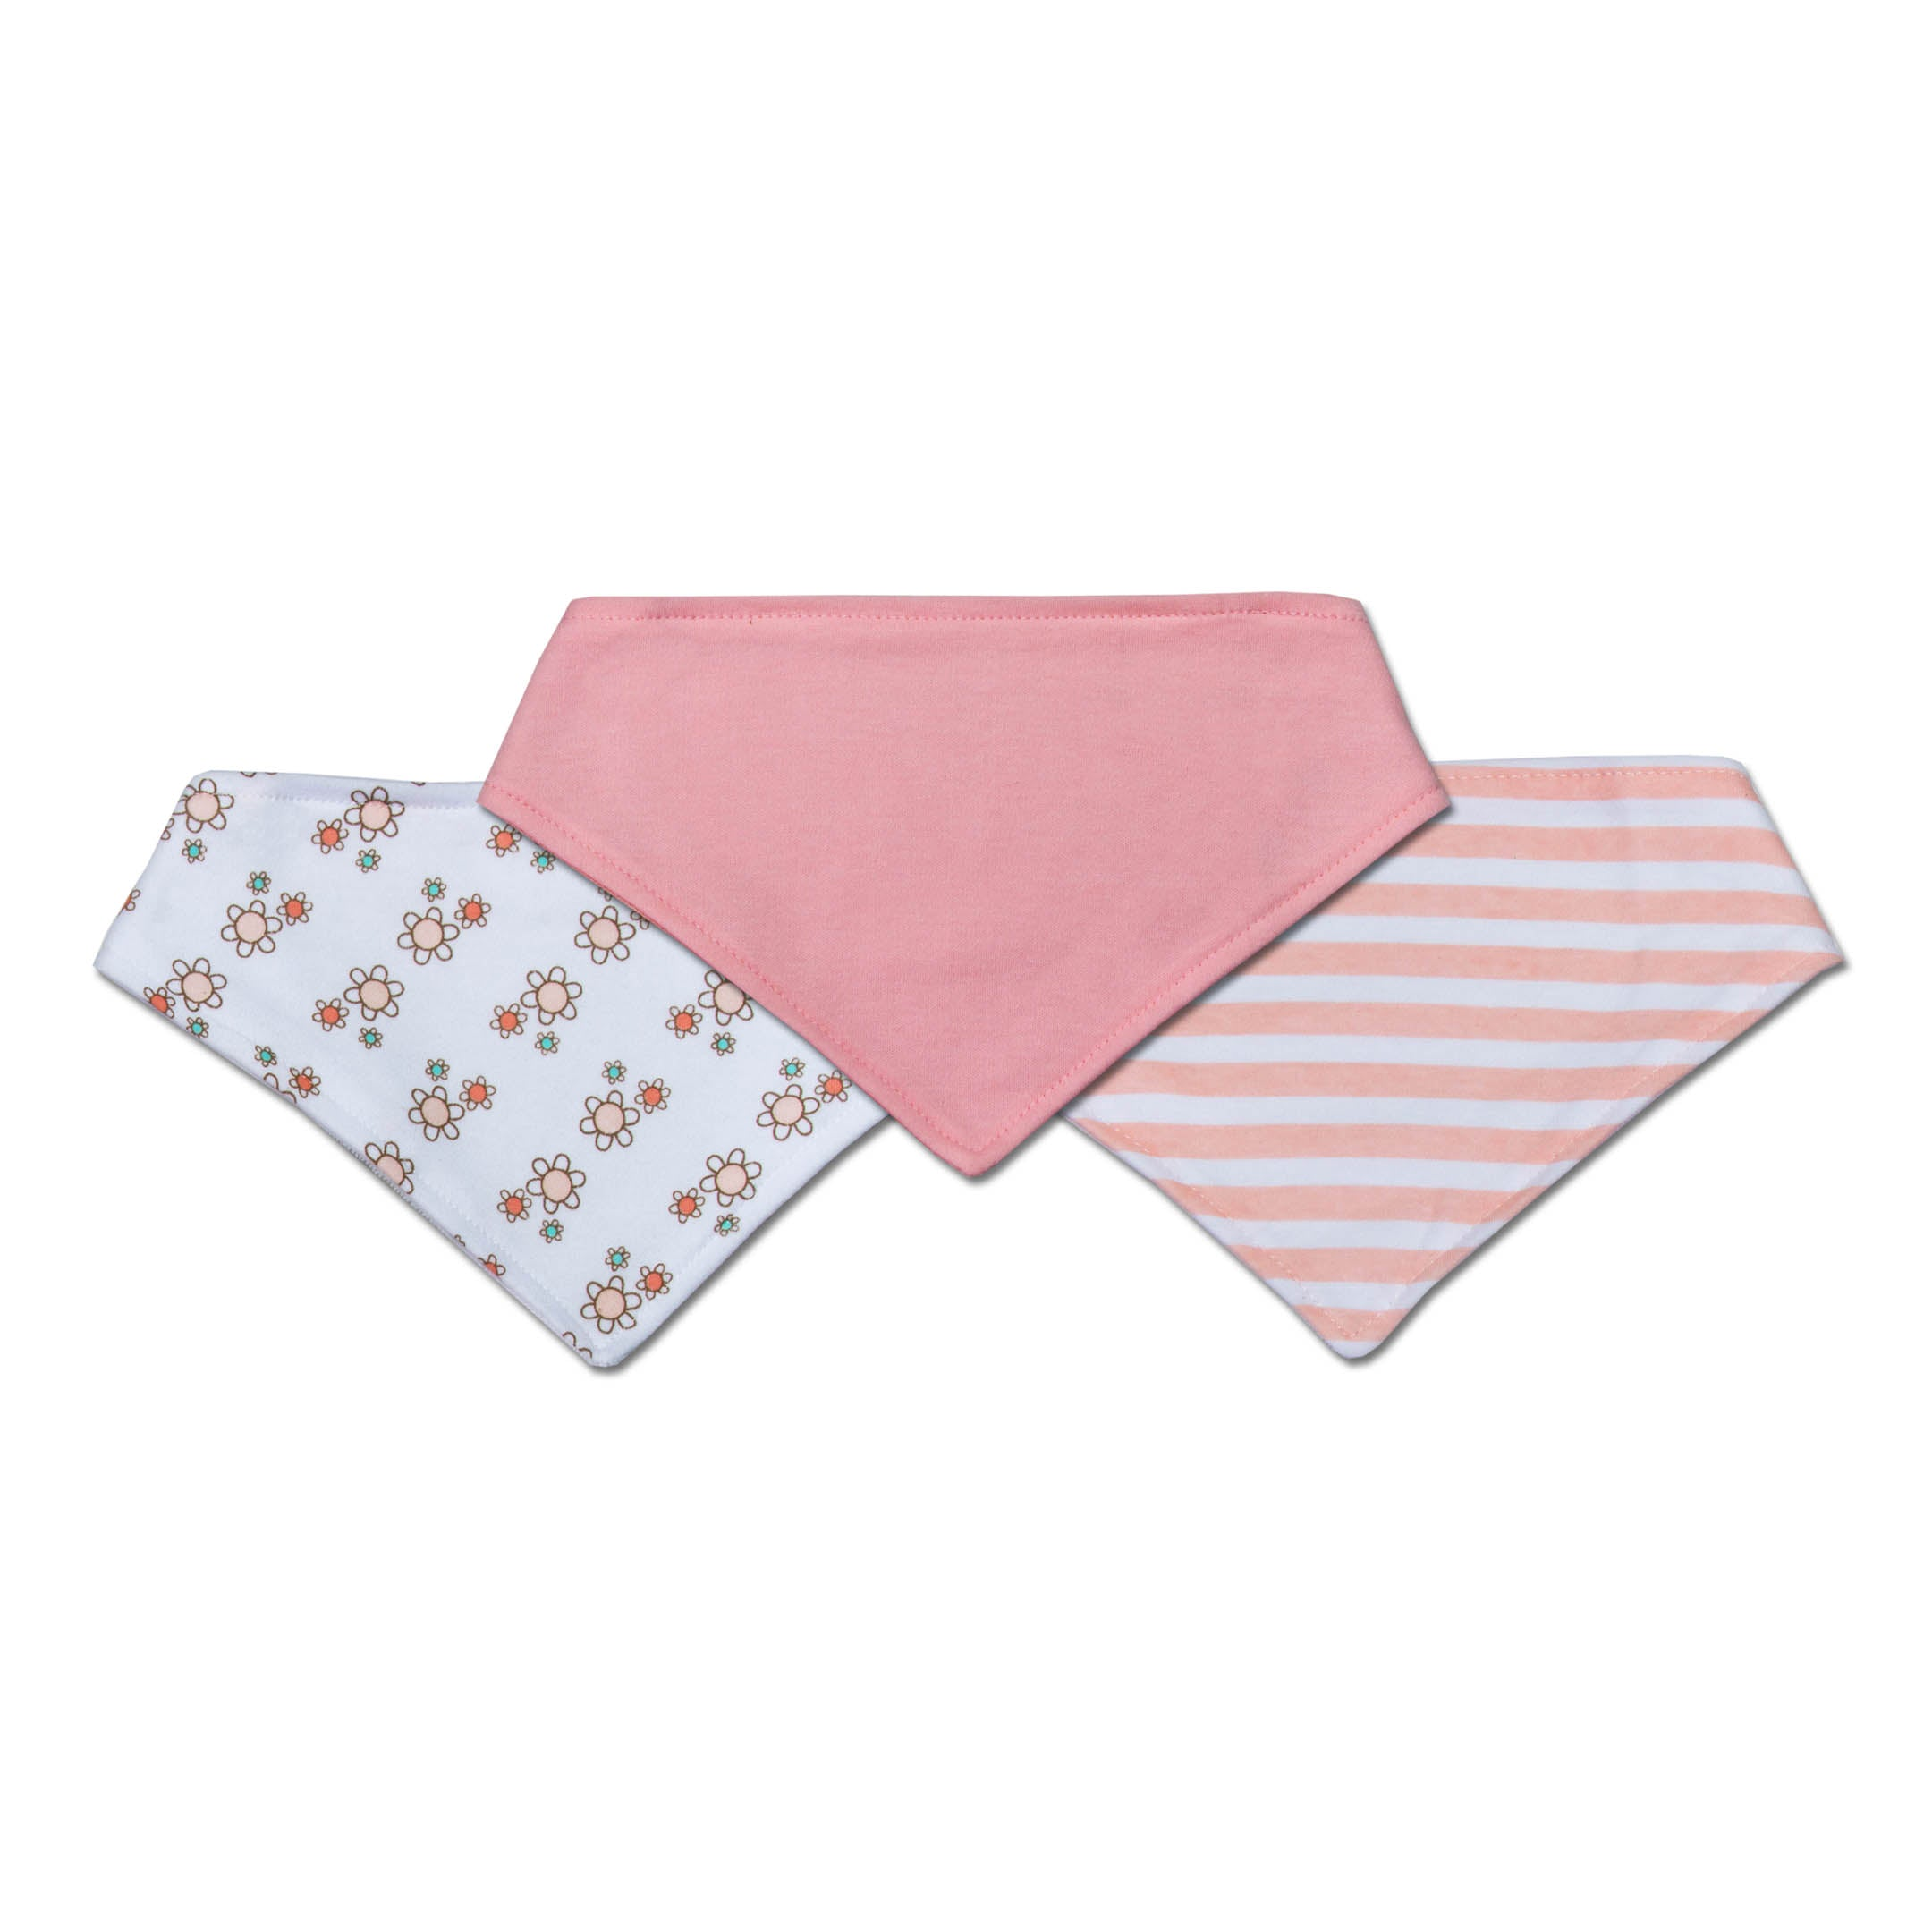 Pack of 3 Cotton Bandana Bib with Snap buttons